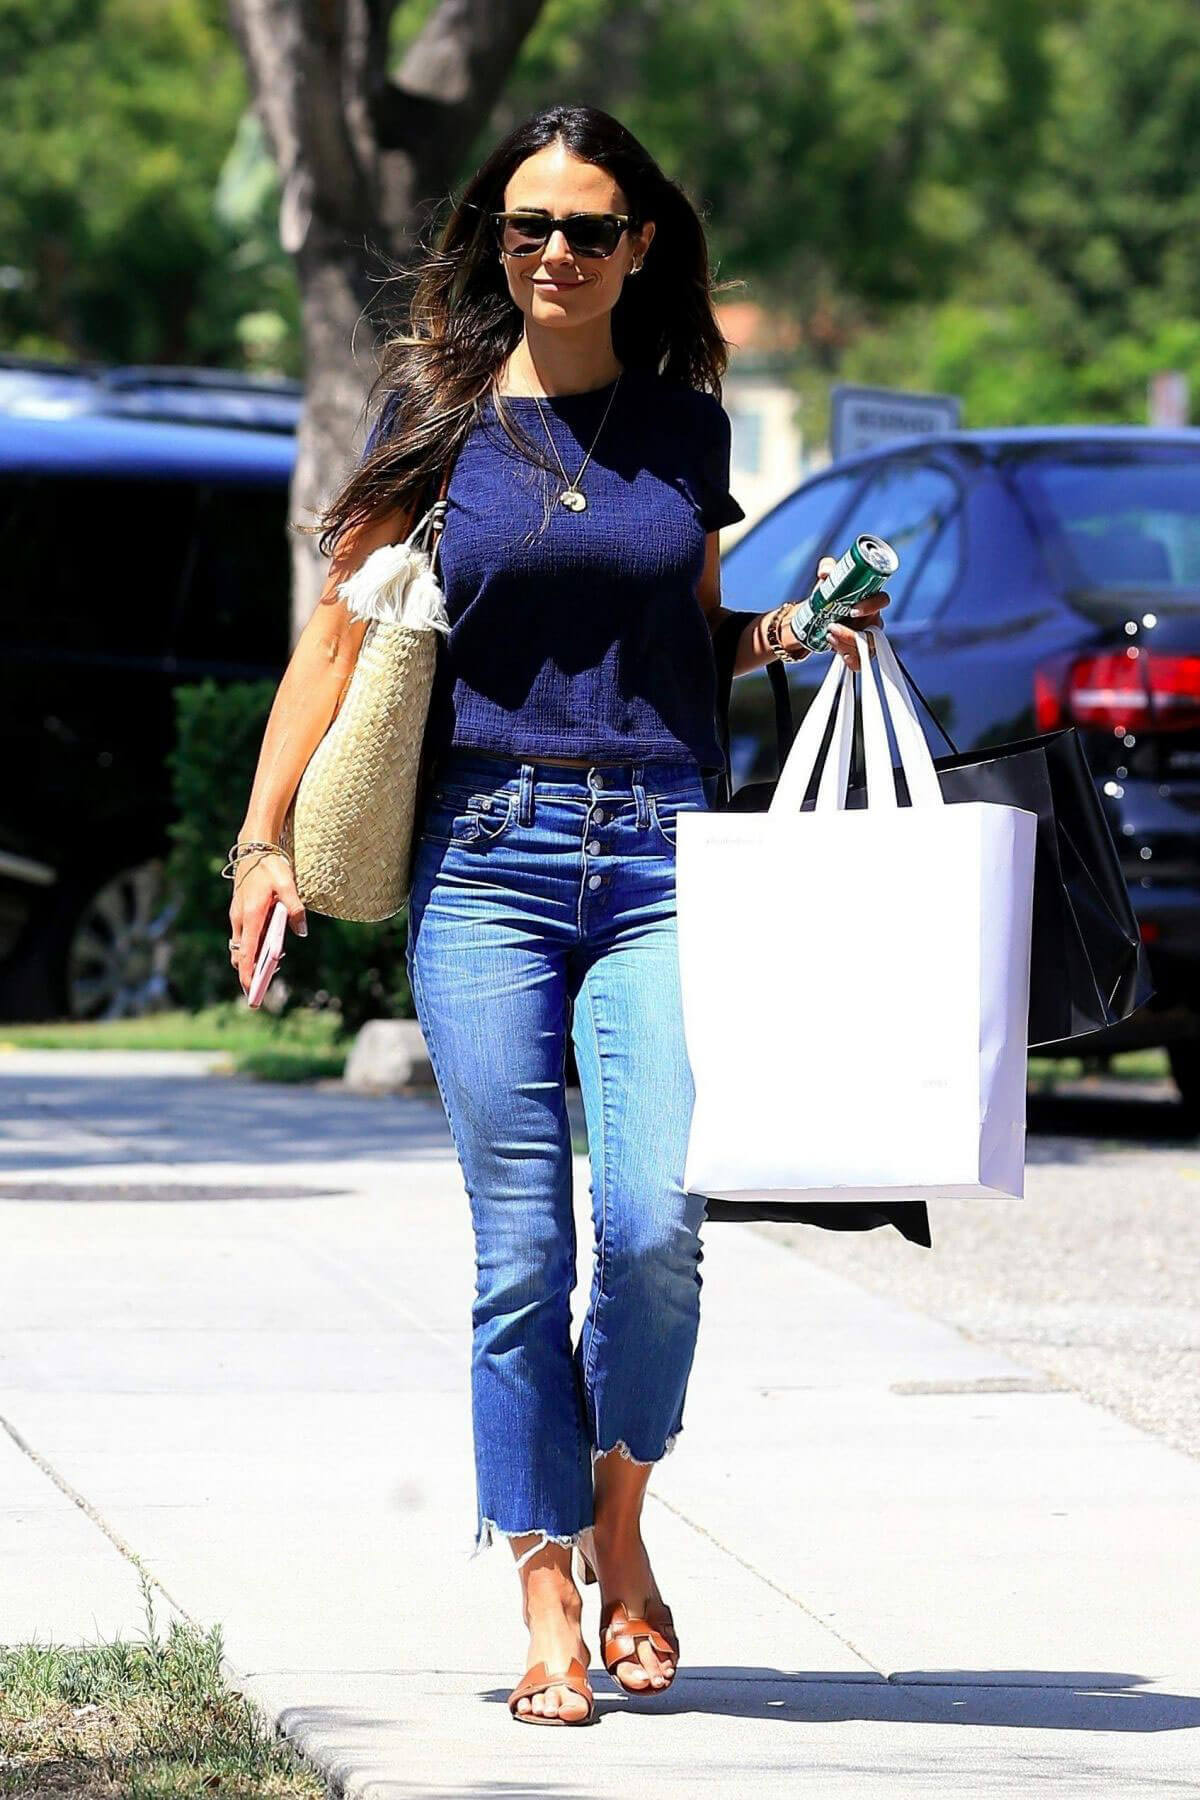 Jordana Brewster Stills in Jeans Out Shopping in Beverly Hills